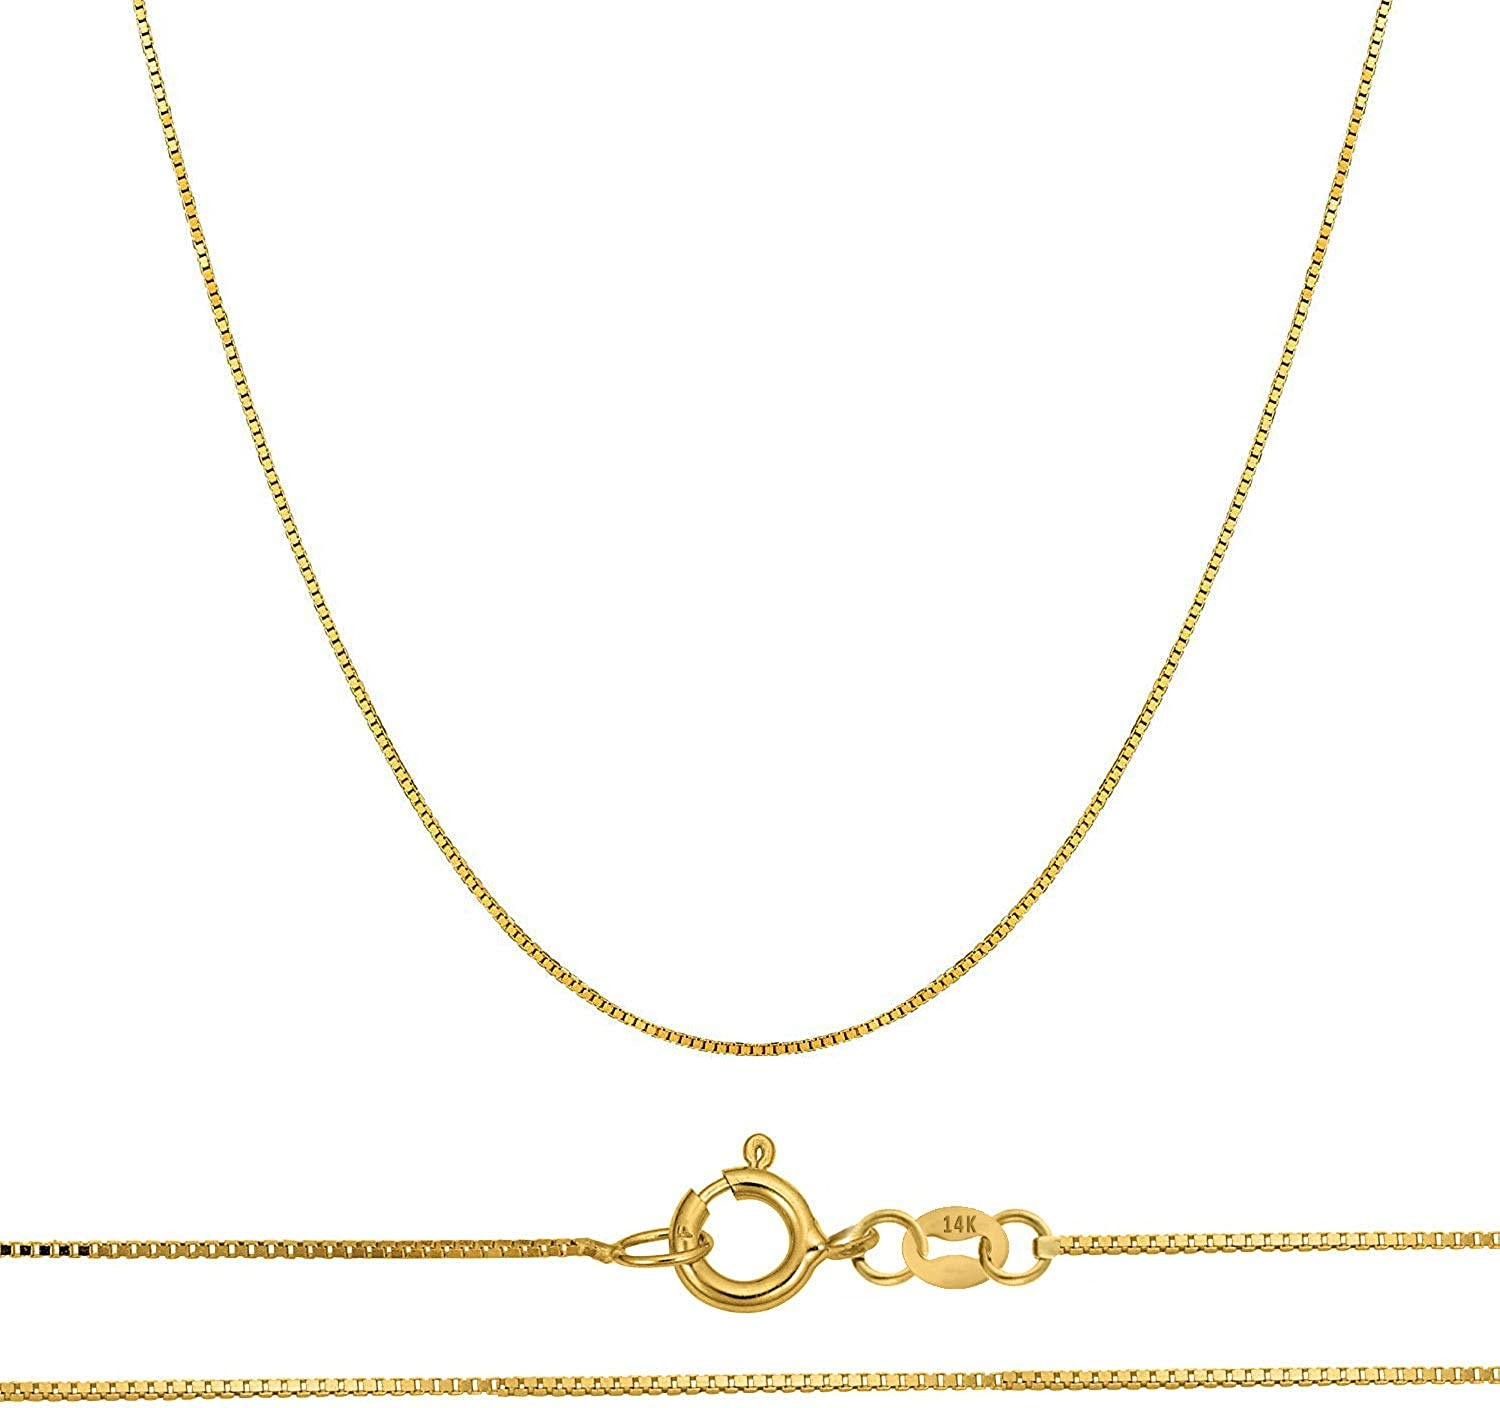 """Orostar 14K Solid Gold 0.45mm Thin Box Chain Pendant Necklace, 16""""-20"""" - Yellow, White, and Rose Gold"""